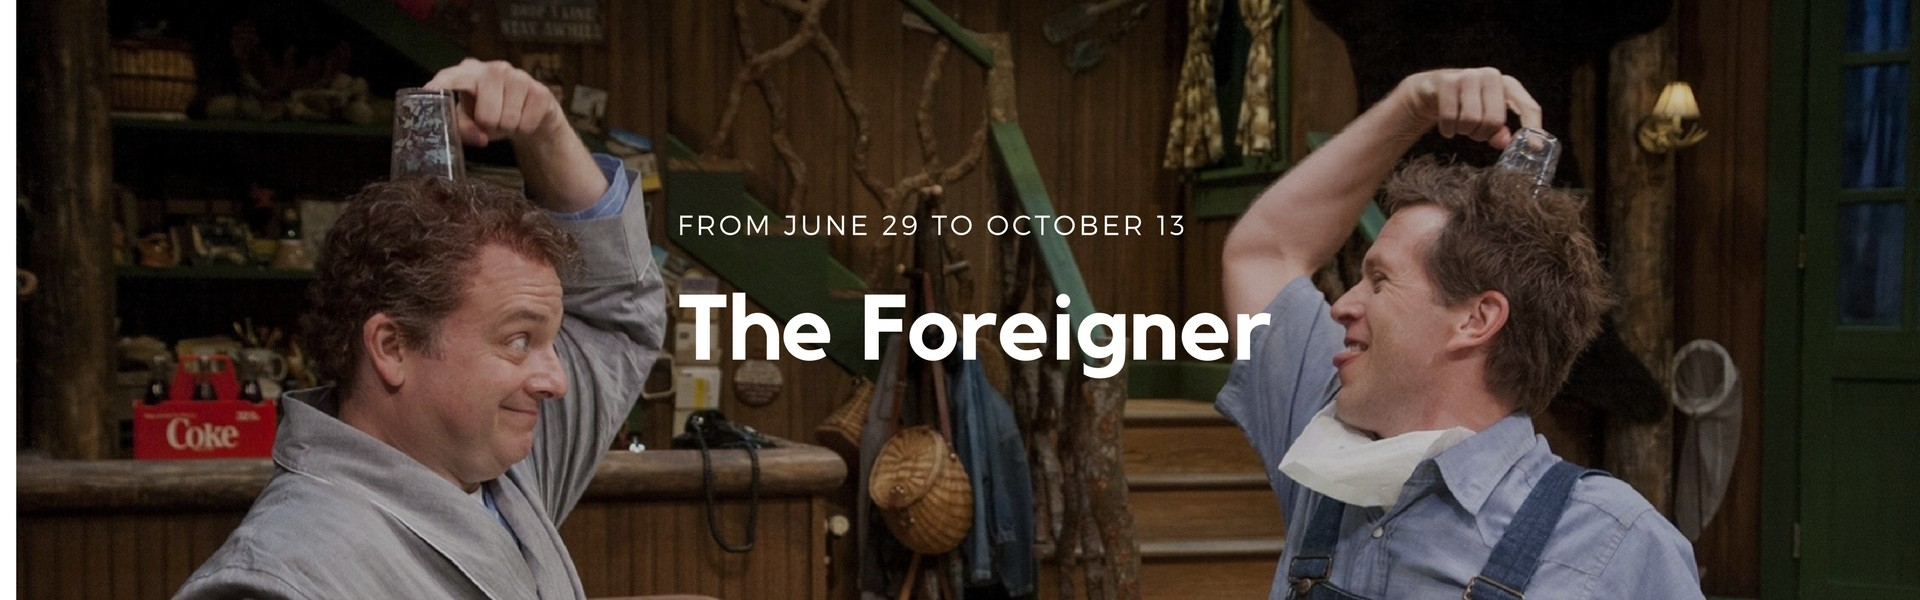 The Foreigner at Shakespeare